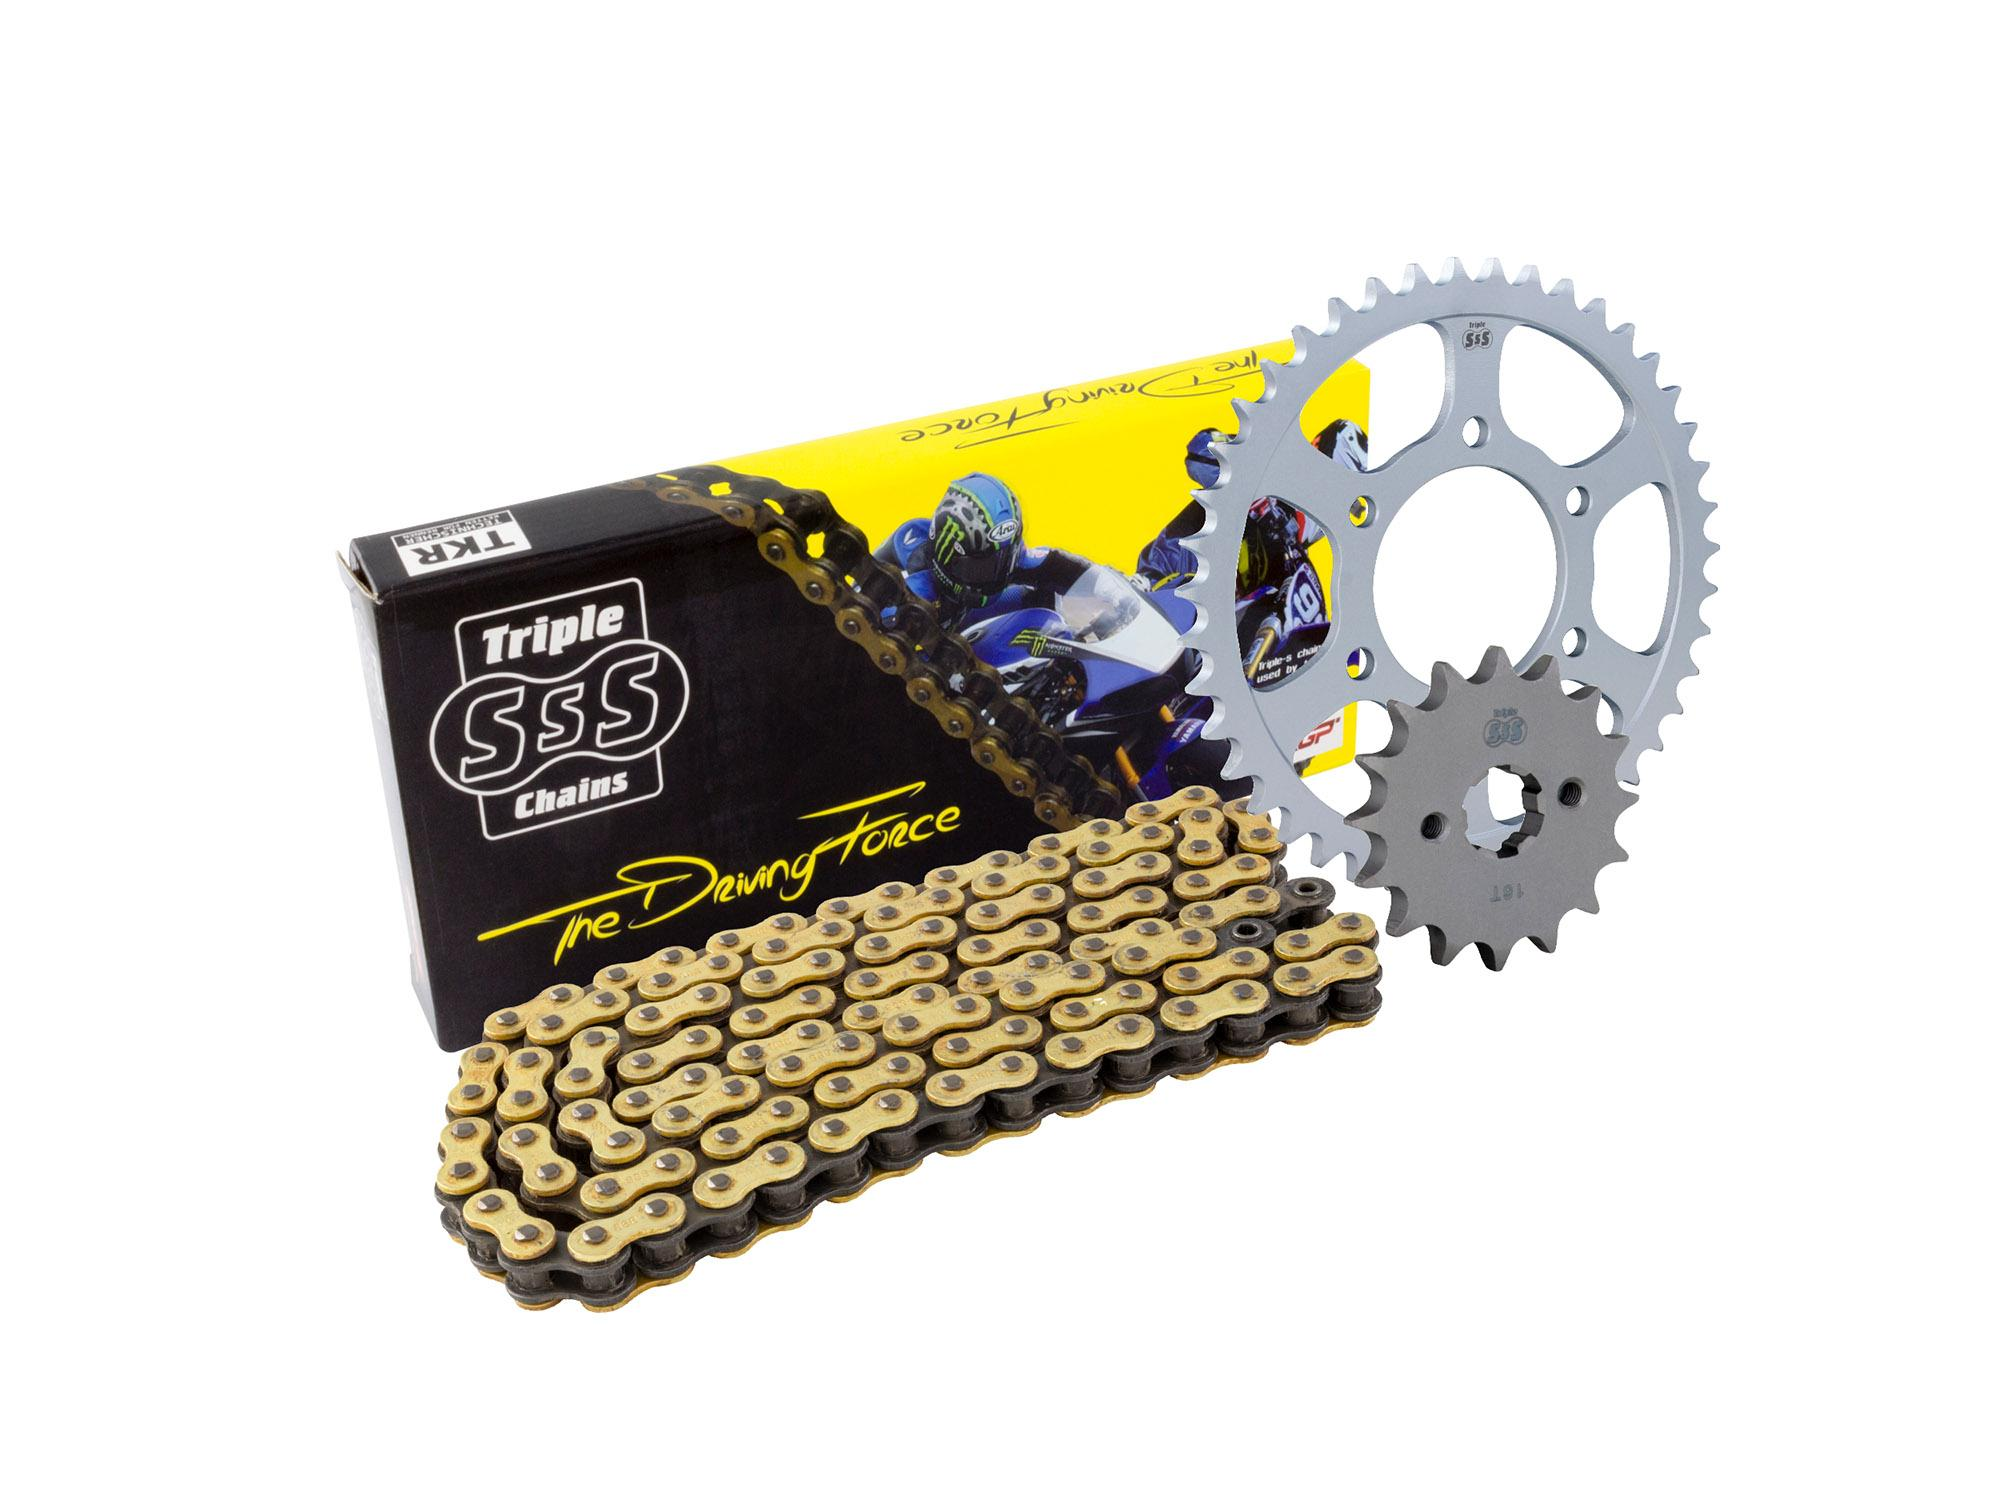 Ducati Panigale 959 16> Chain & Sprocket Kit: 15T Front, 43T Rear, HD O-Ring Gold Chain 520H 106Link